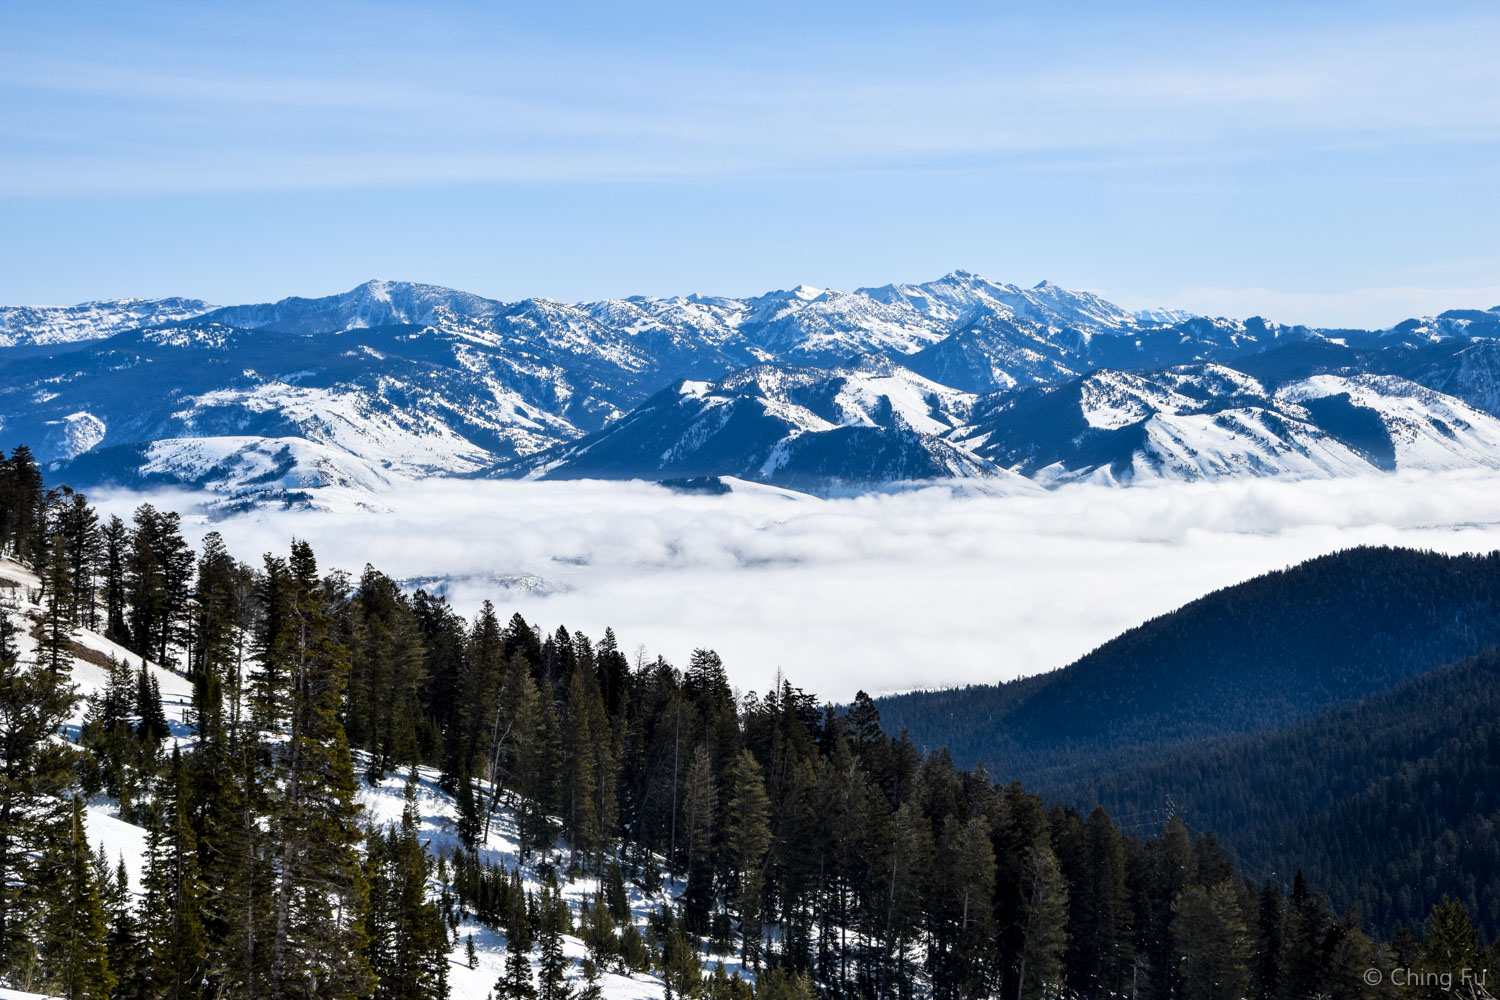 Looking down from Teton Pass.